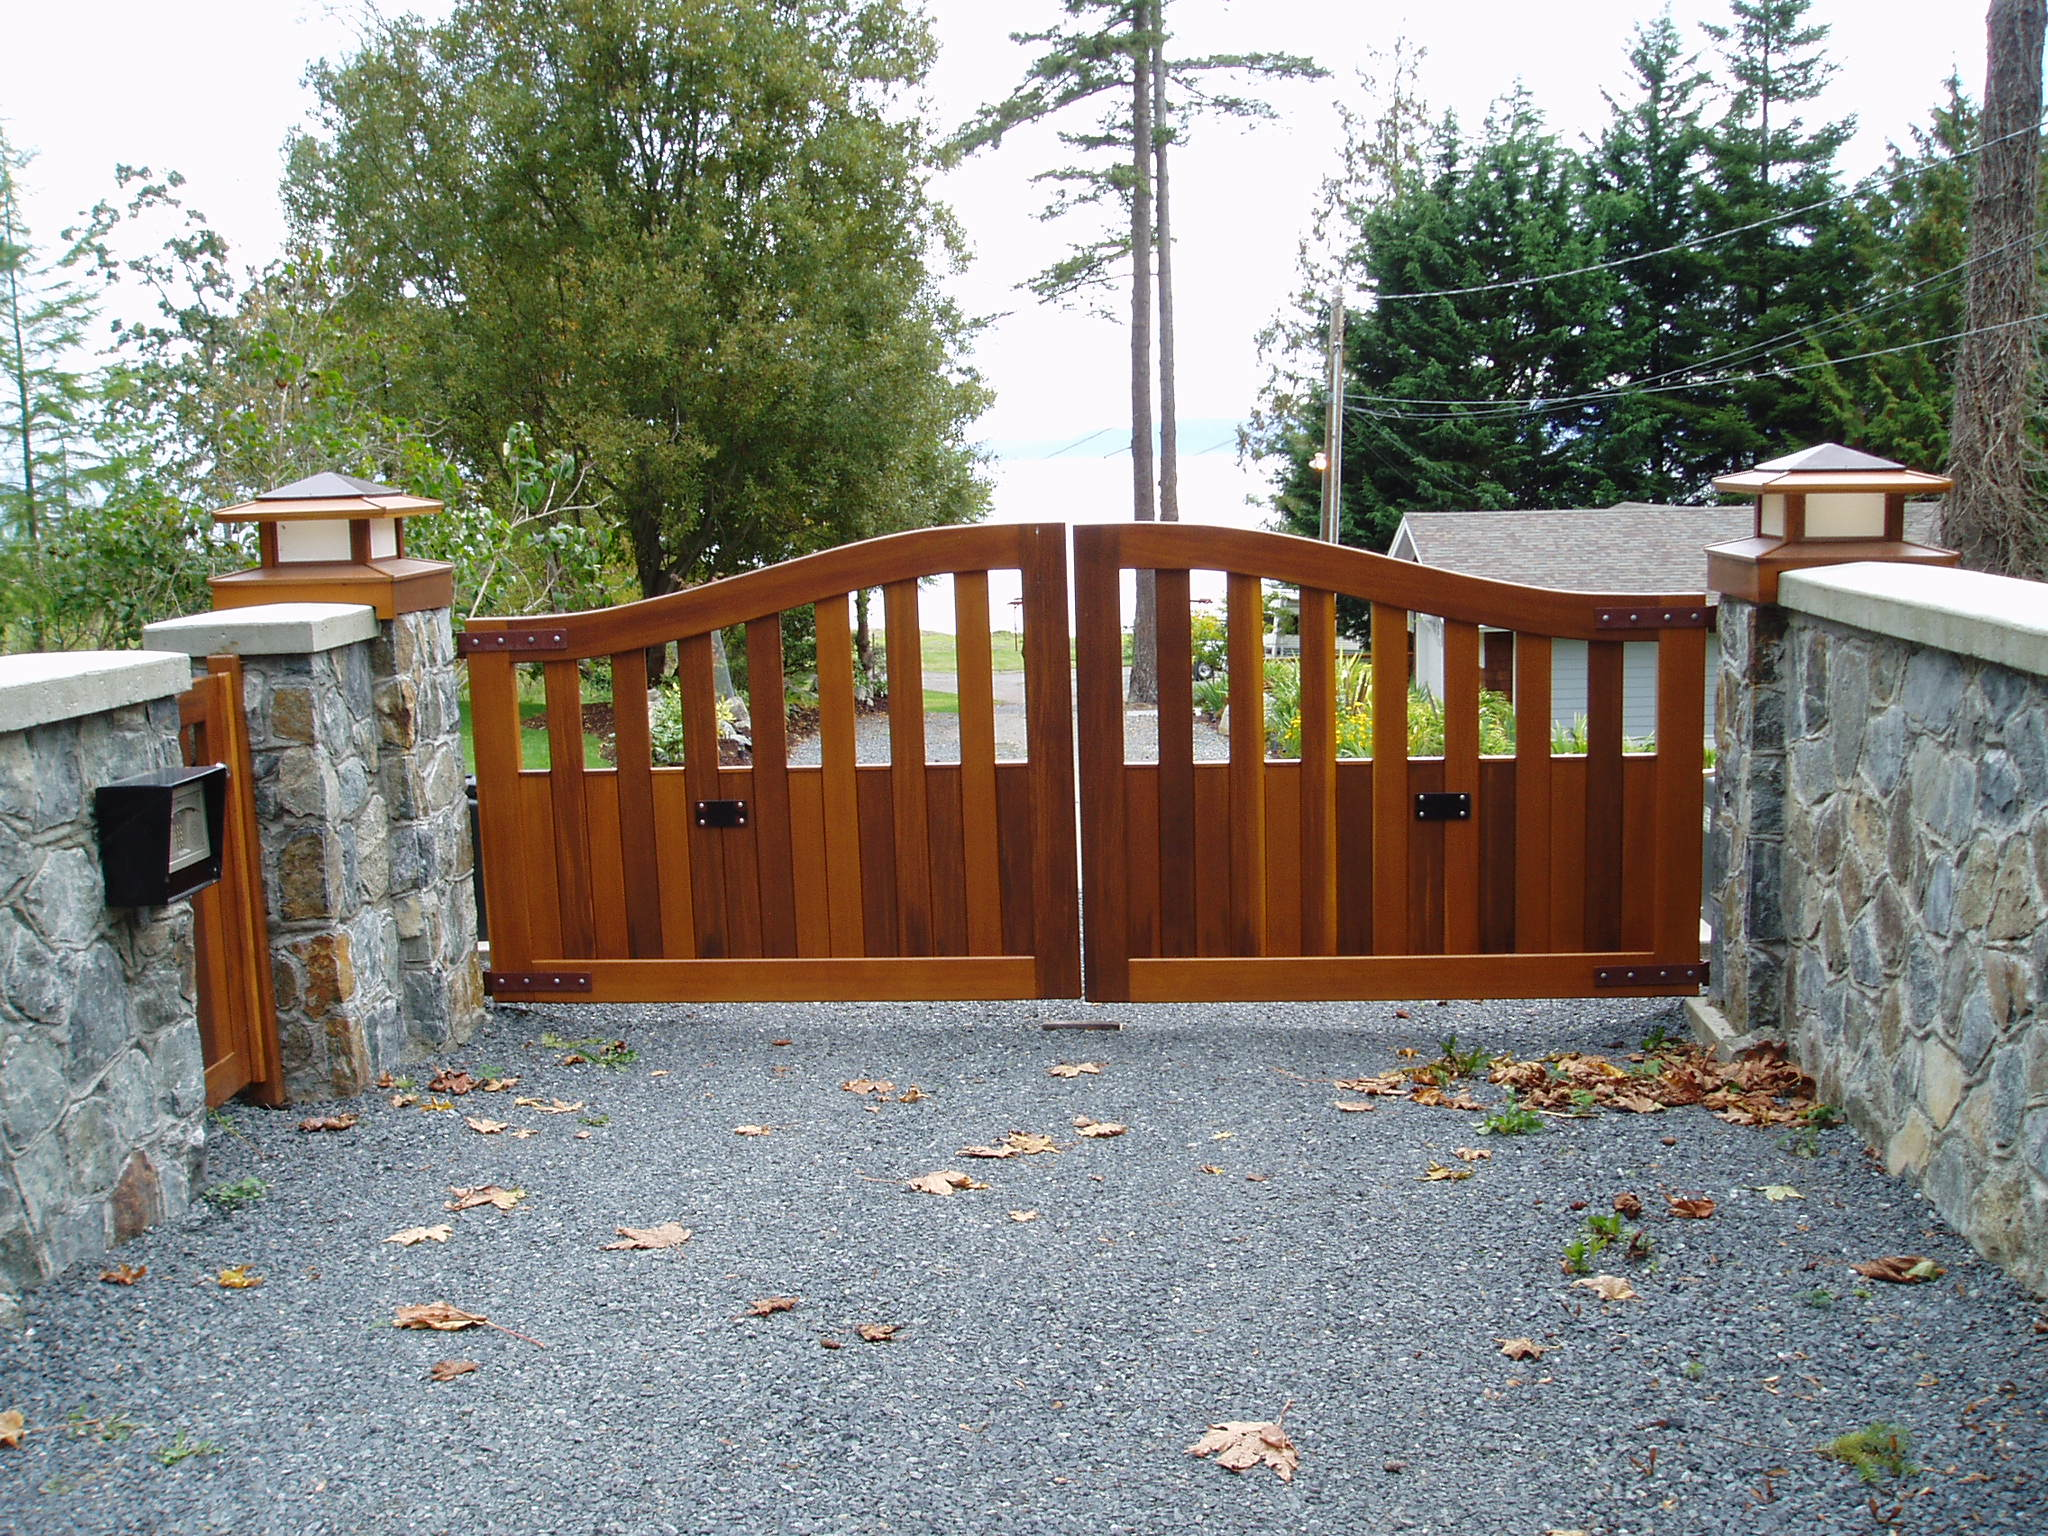 Swing gates articulating arms harbour door for Wooden driveway gates designs